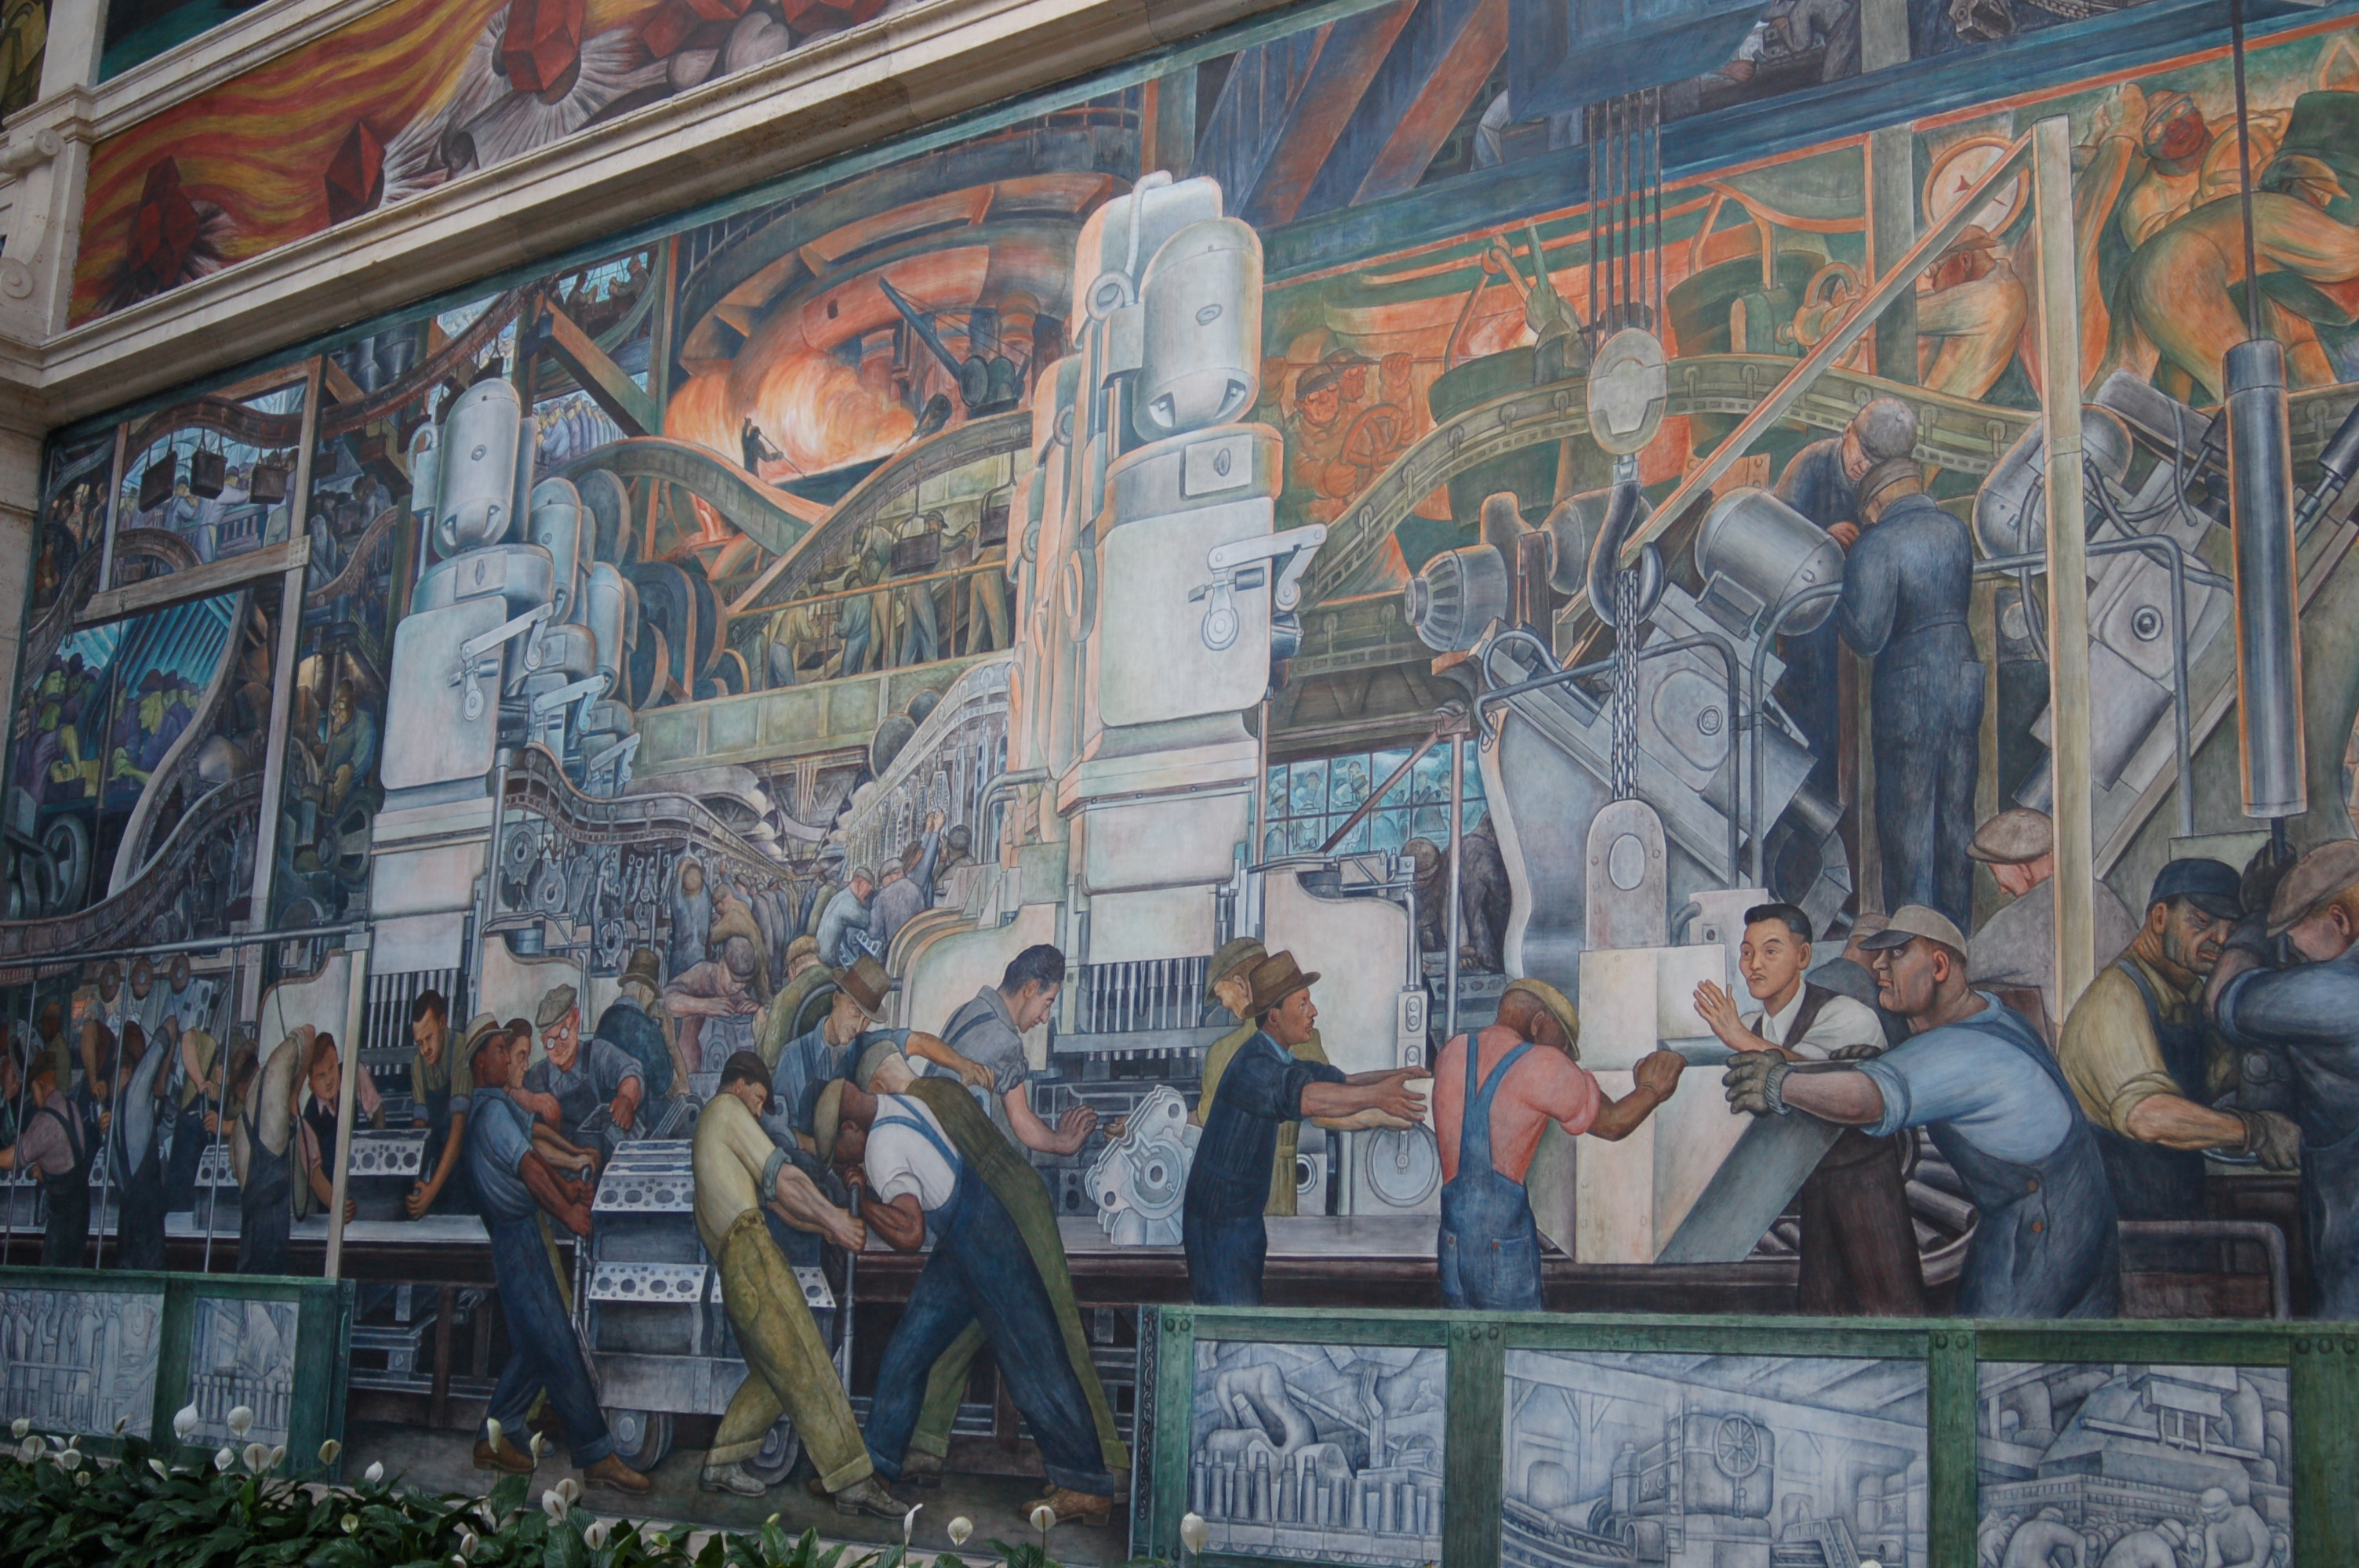 Diego Rivera Murals in Detroit, courtesy of wikipedia